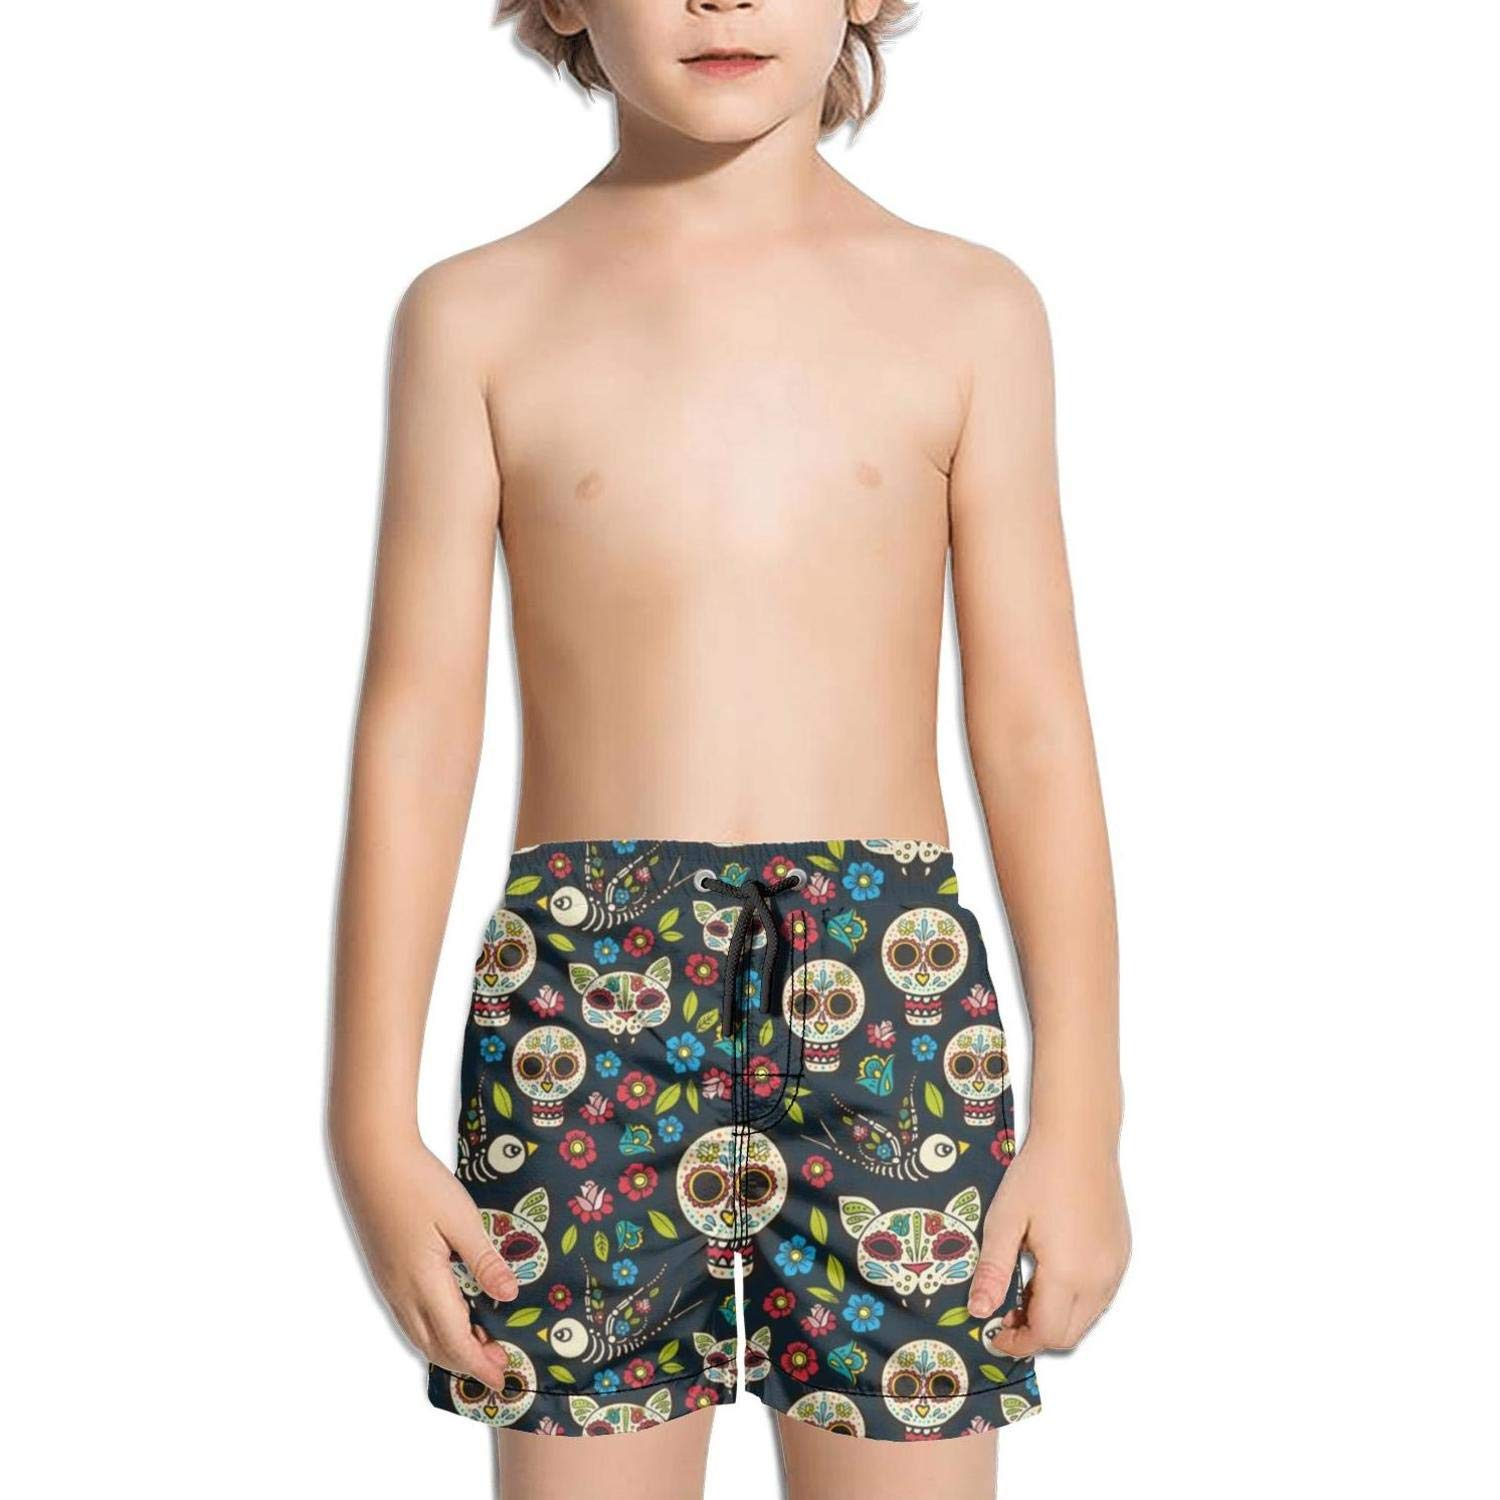 Boys Swim Trunks Colorful Skull Party Art Quick Dry Bathing Suits Beach Board Shorts